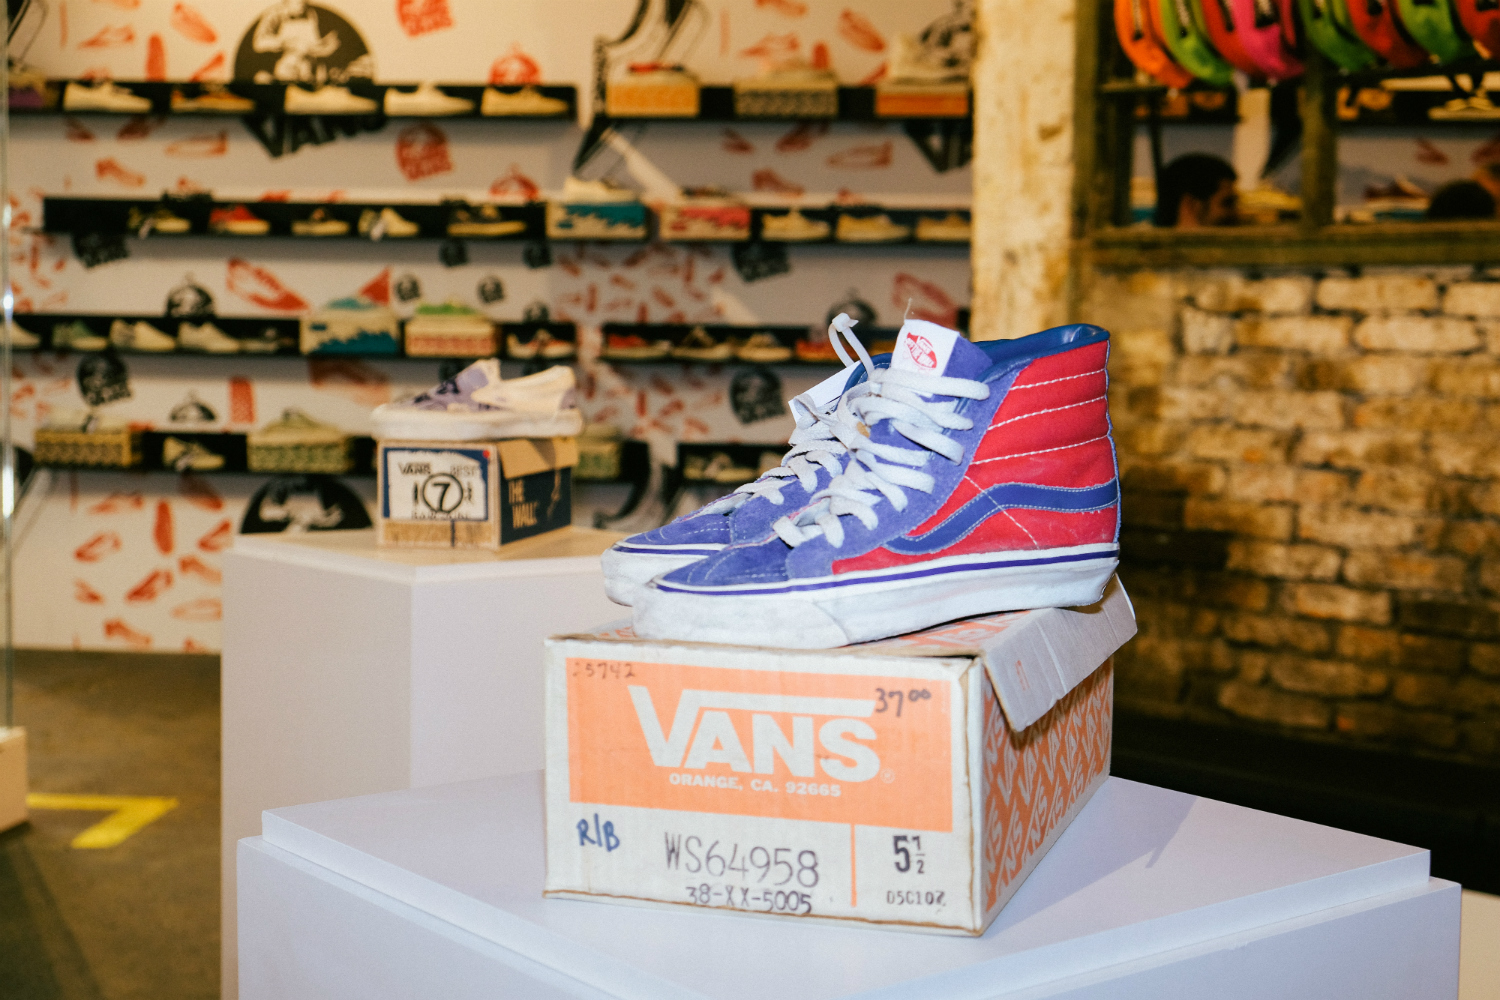 VANS OFF THE WALL B&&B BREAD AND BUTTER BY ZALANDO SHOES FASHION ERA SKATE